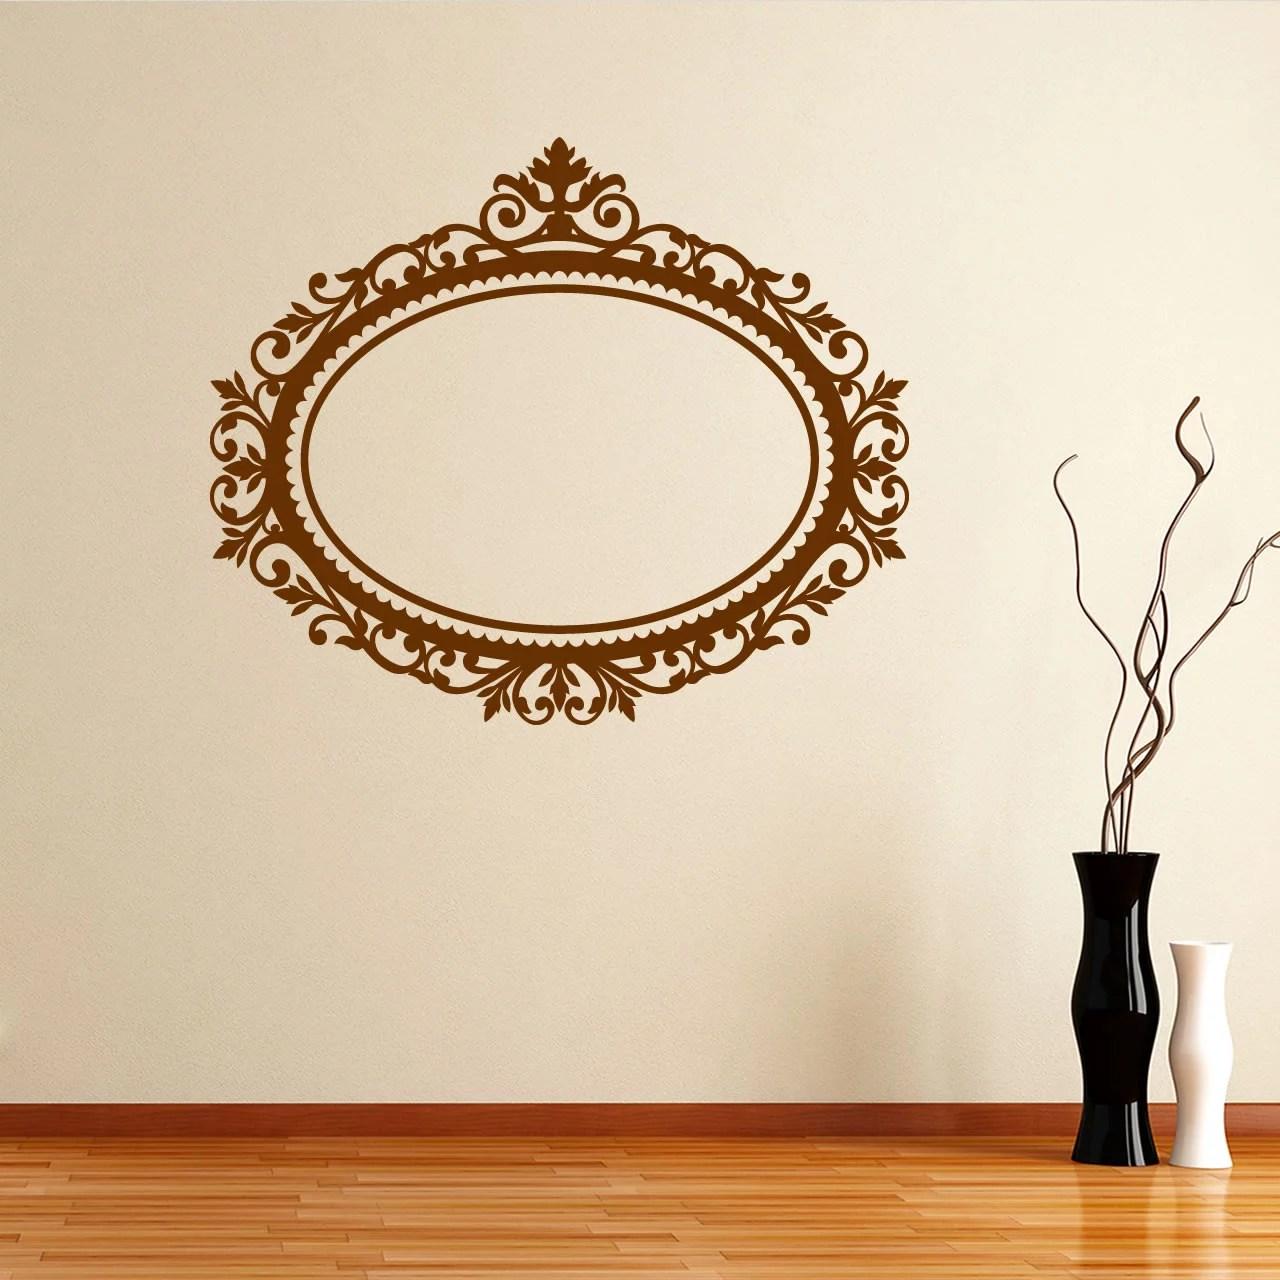 Decorative Wall Stickers Decorative Frame Wall Sticker World Of Wall Stickers